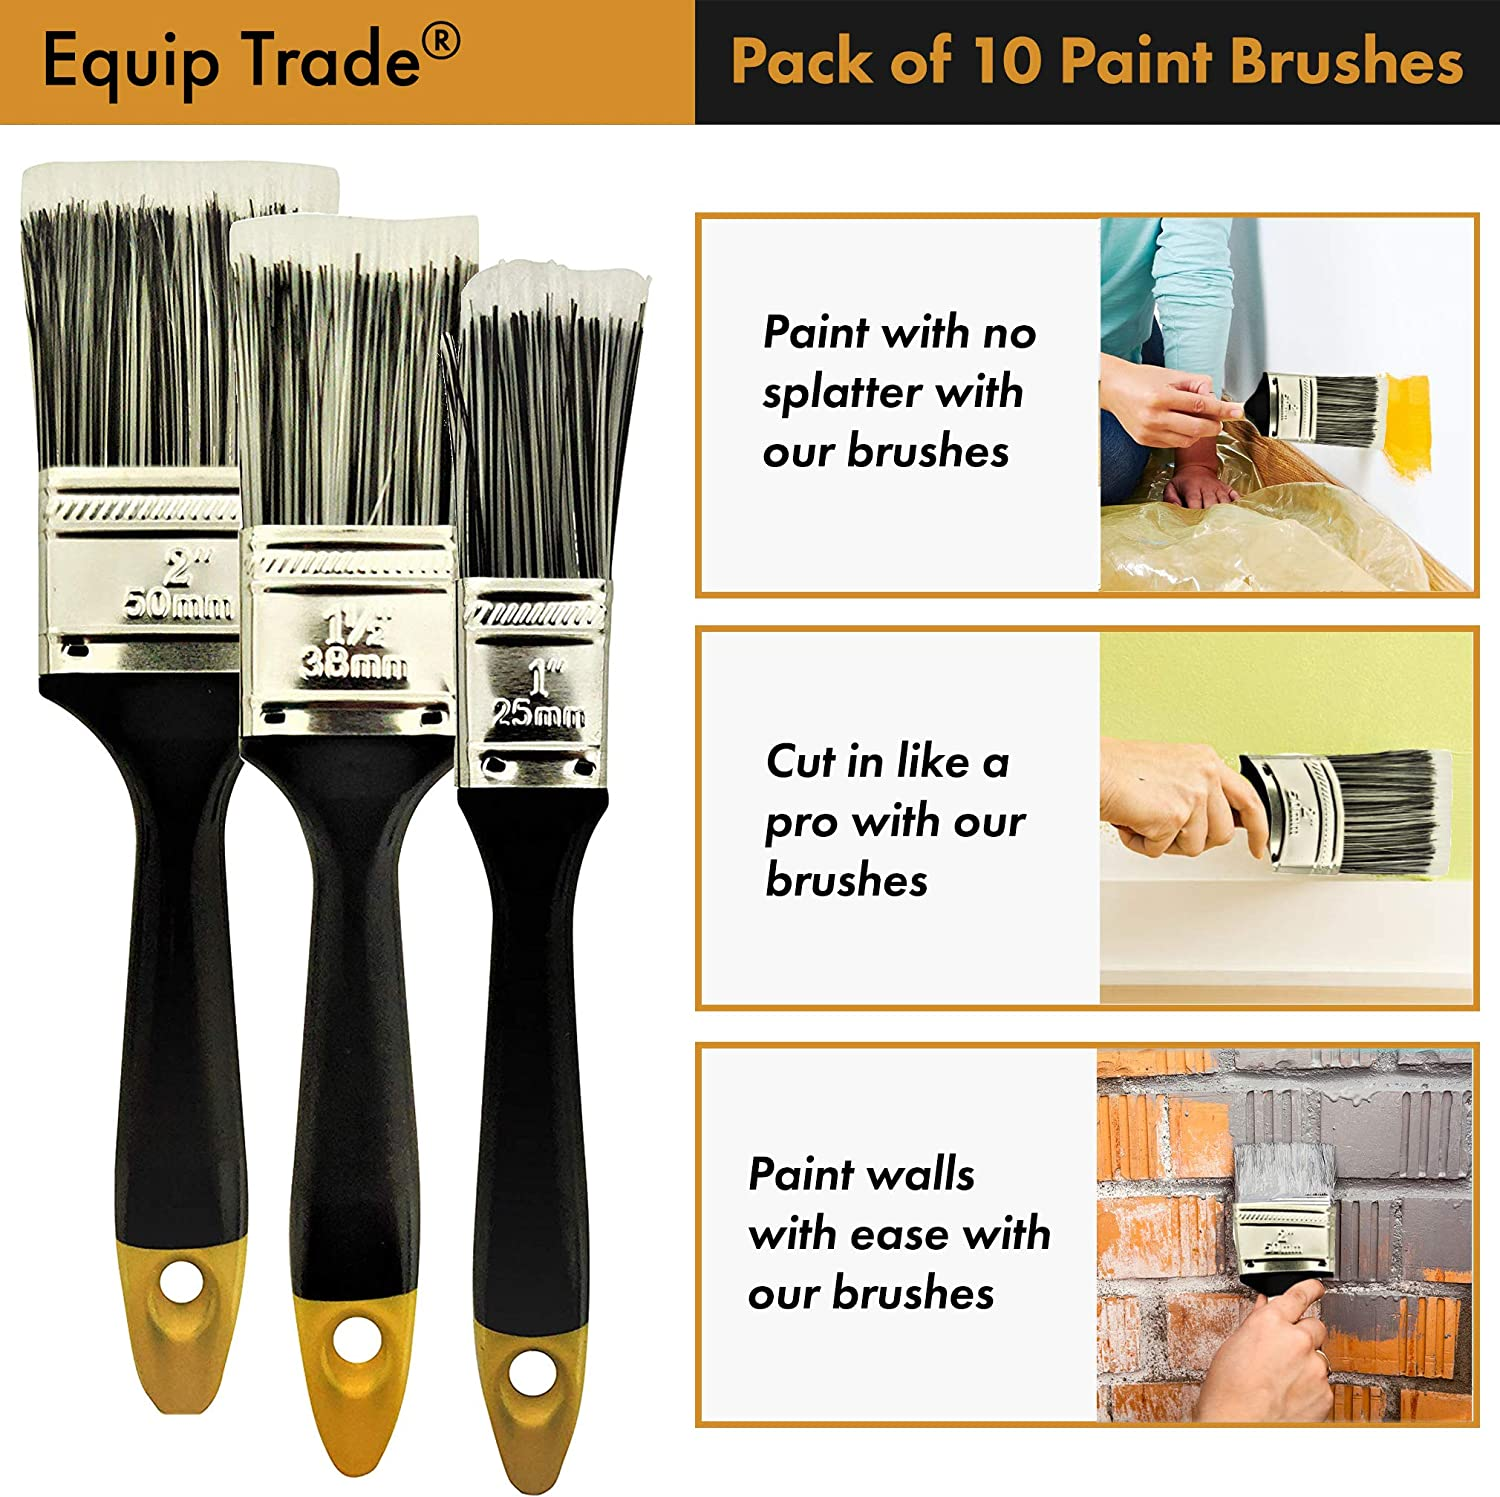 Pack of 10 Paint Brush Suitable for All Paints for Home Wall Trim House Equip Trade/® Paint Brushes